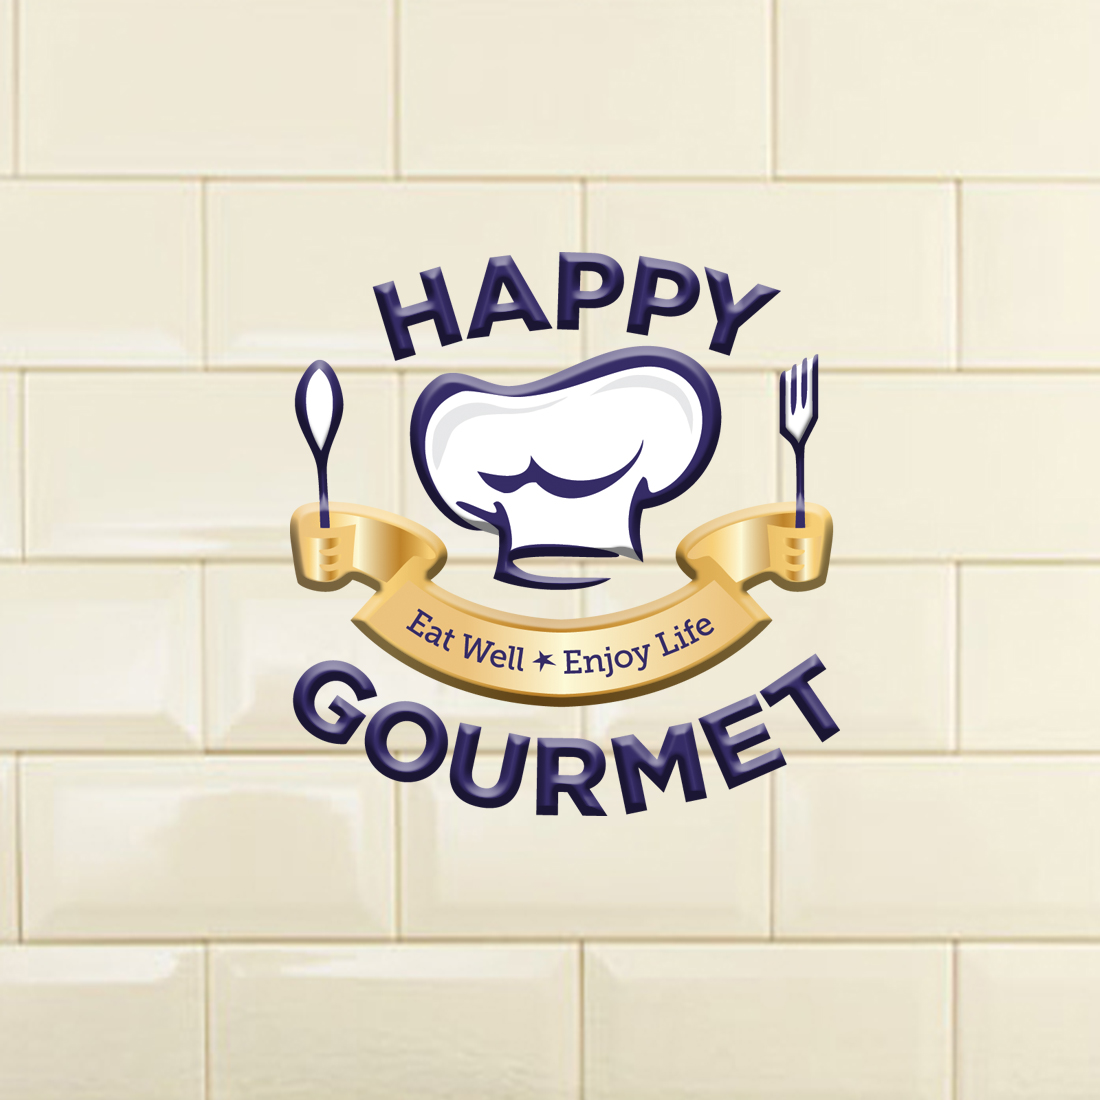 Happy Gourmet - Branding and Website Design